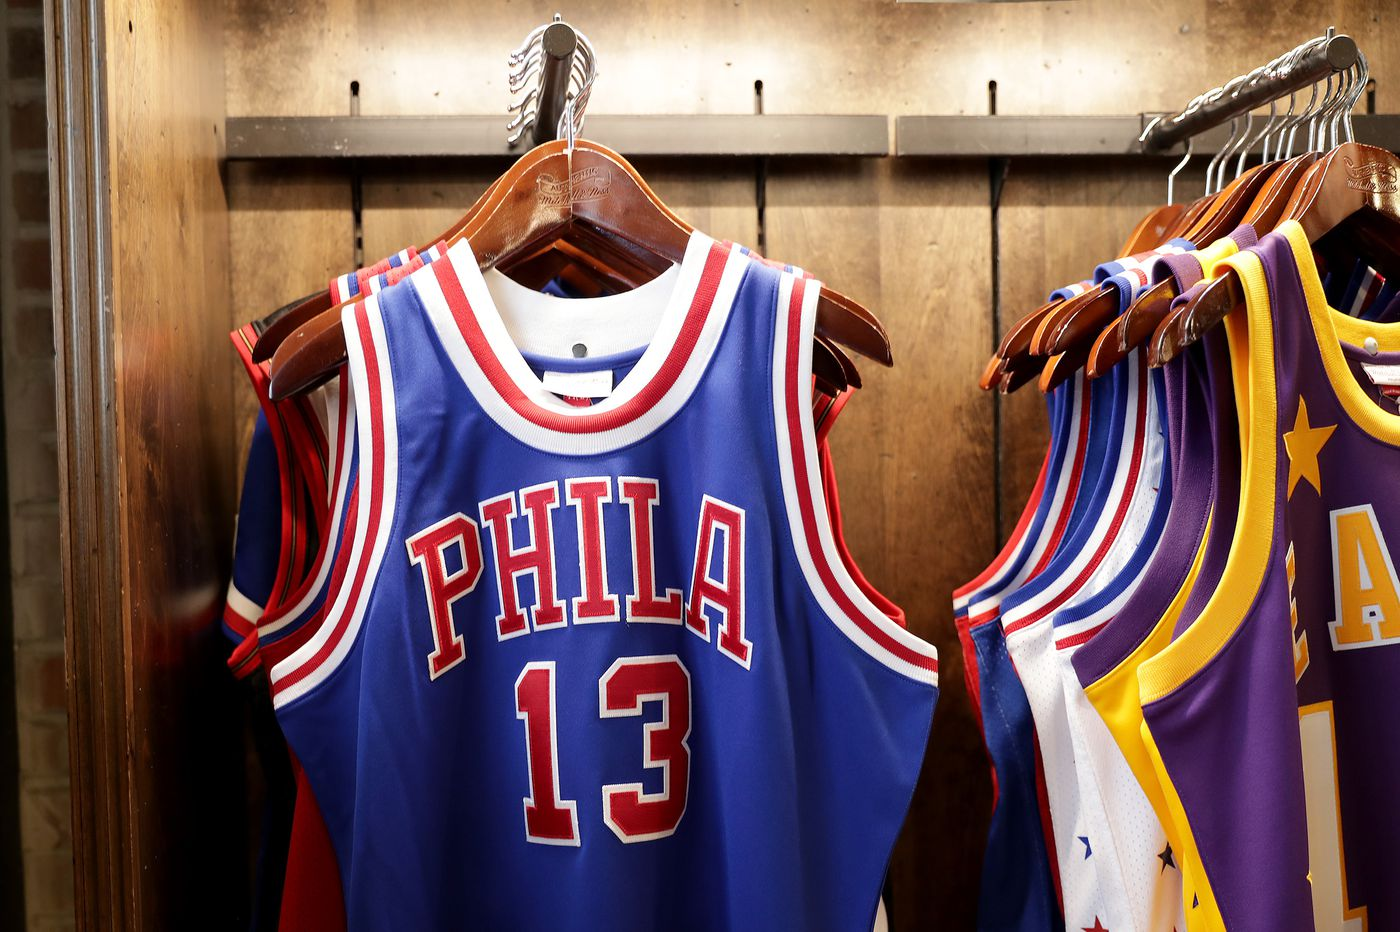 competitive price 6d497 ee4de The best jersey ever worn by a Philly team? You tell us.